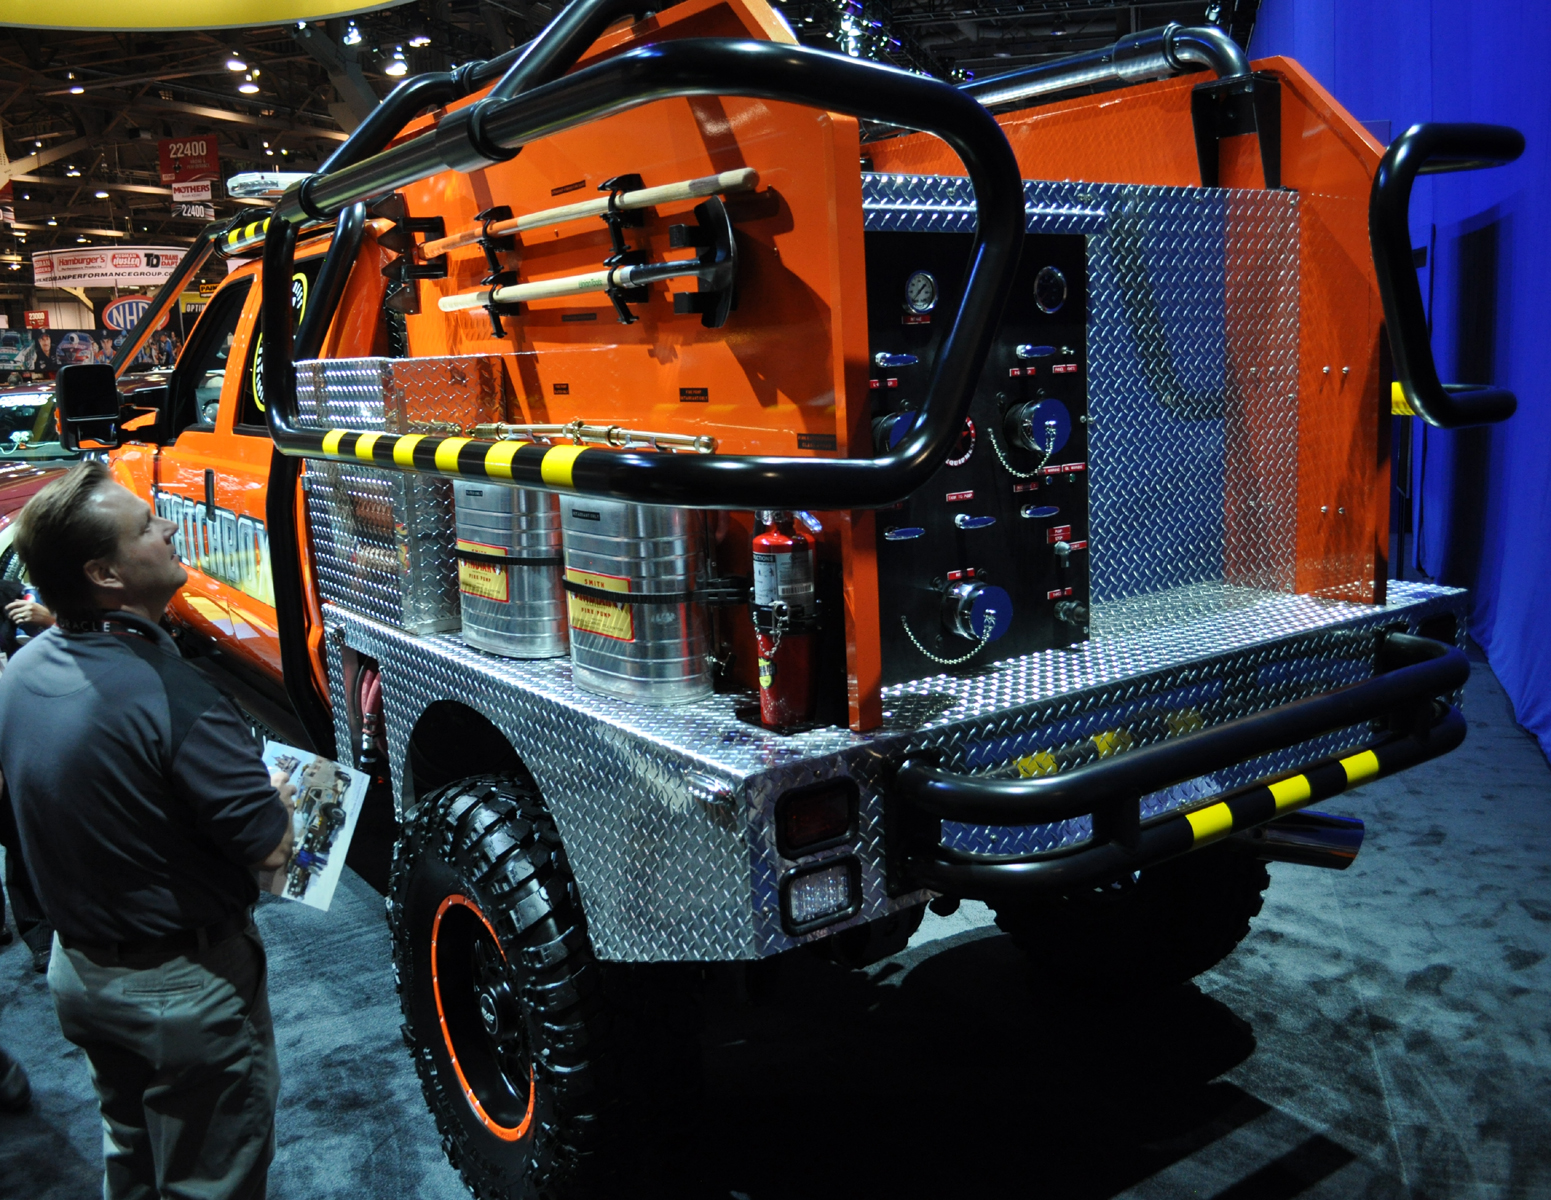 Just A Car Guy: The Full Size Matchbox Truck At SEMA, A